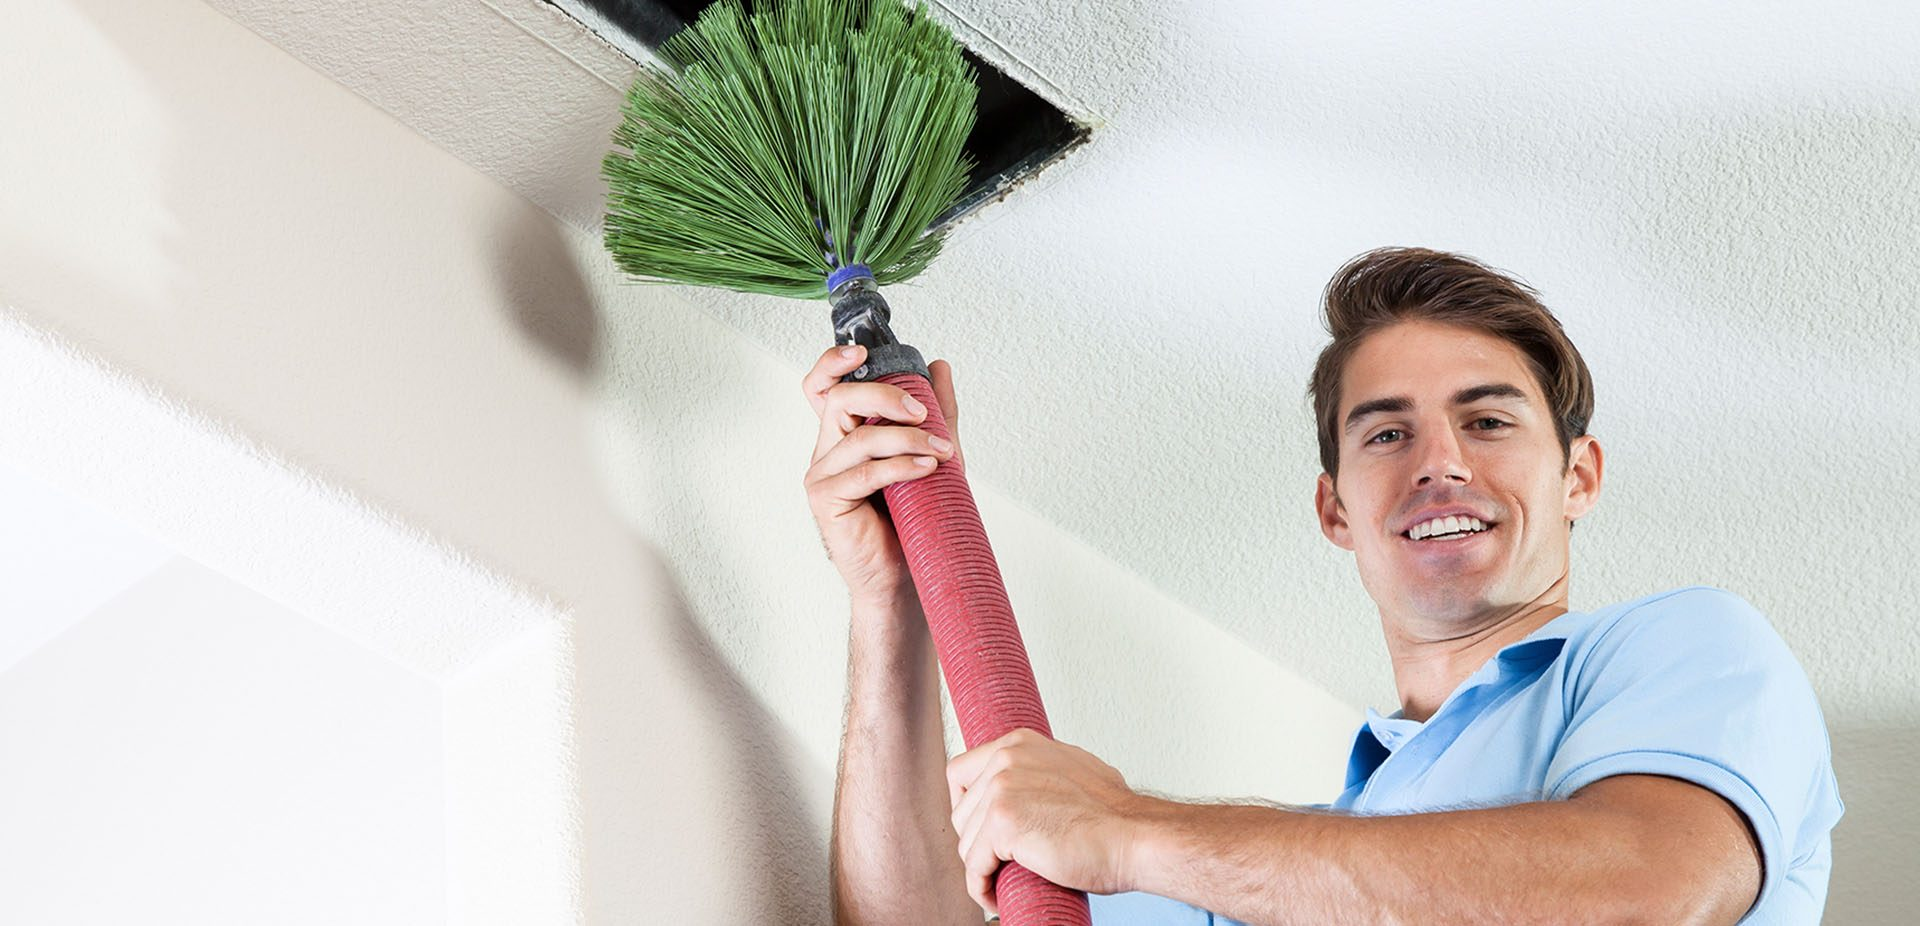 Indoor air quality specialist cleaning air ducts with HVAC duct cleaning machine